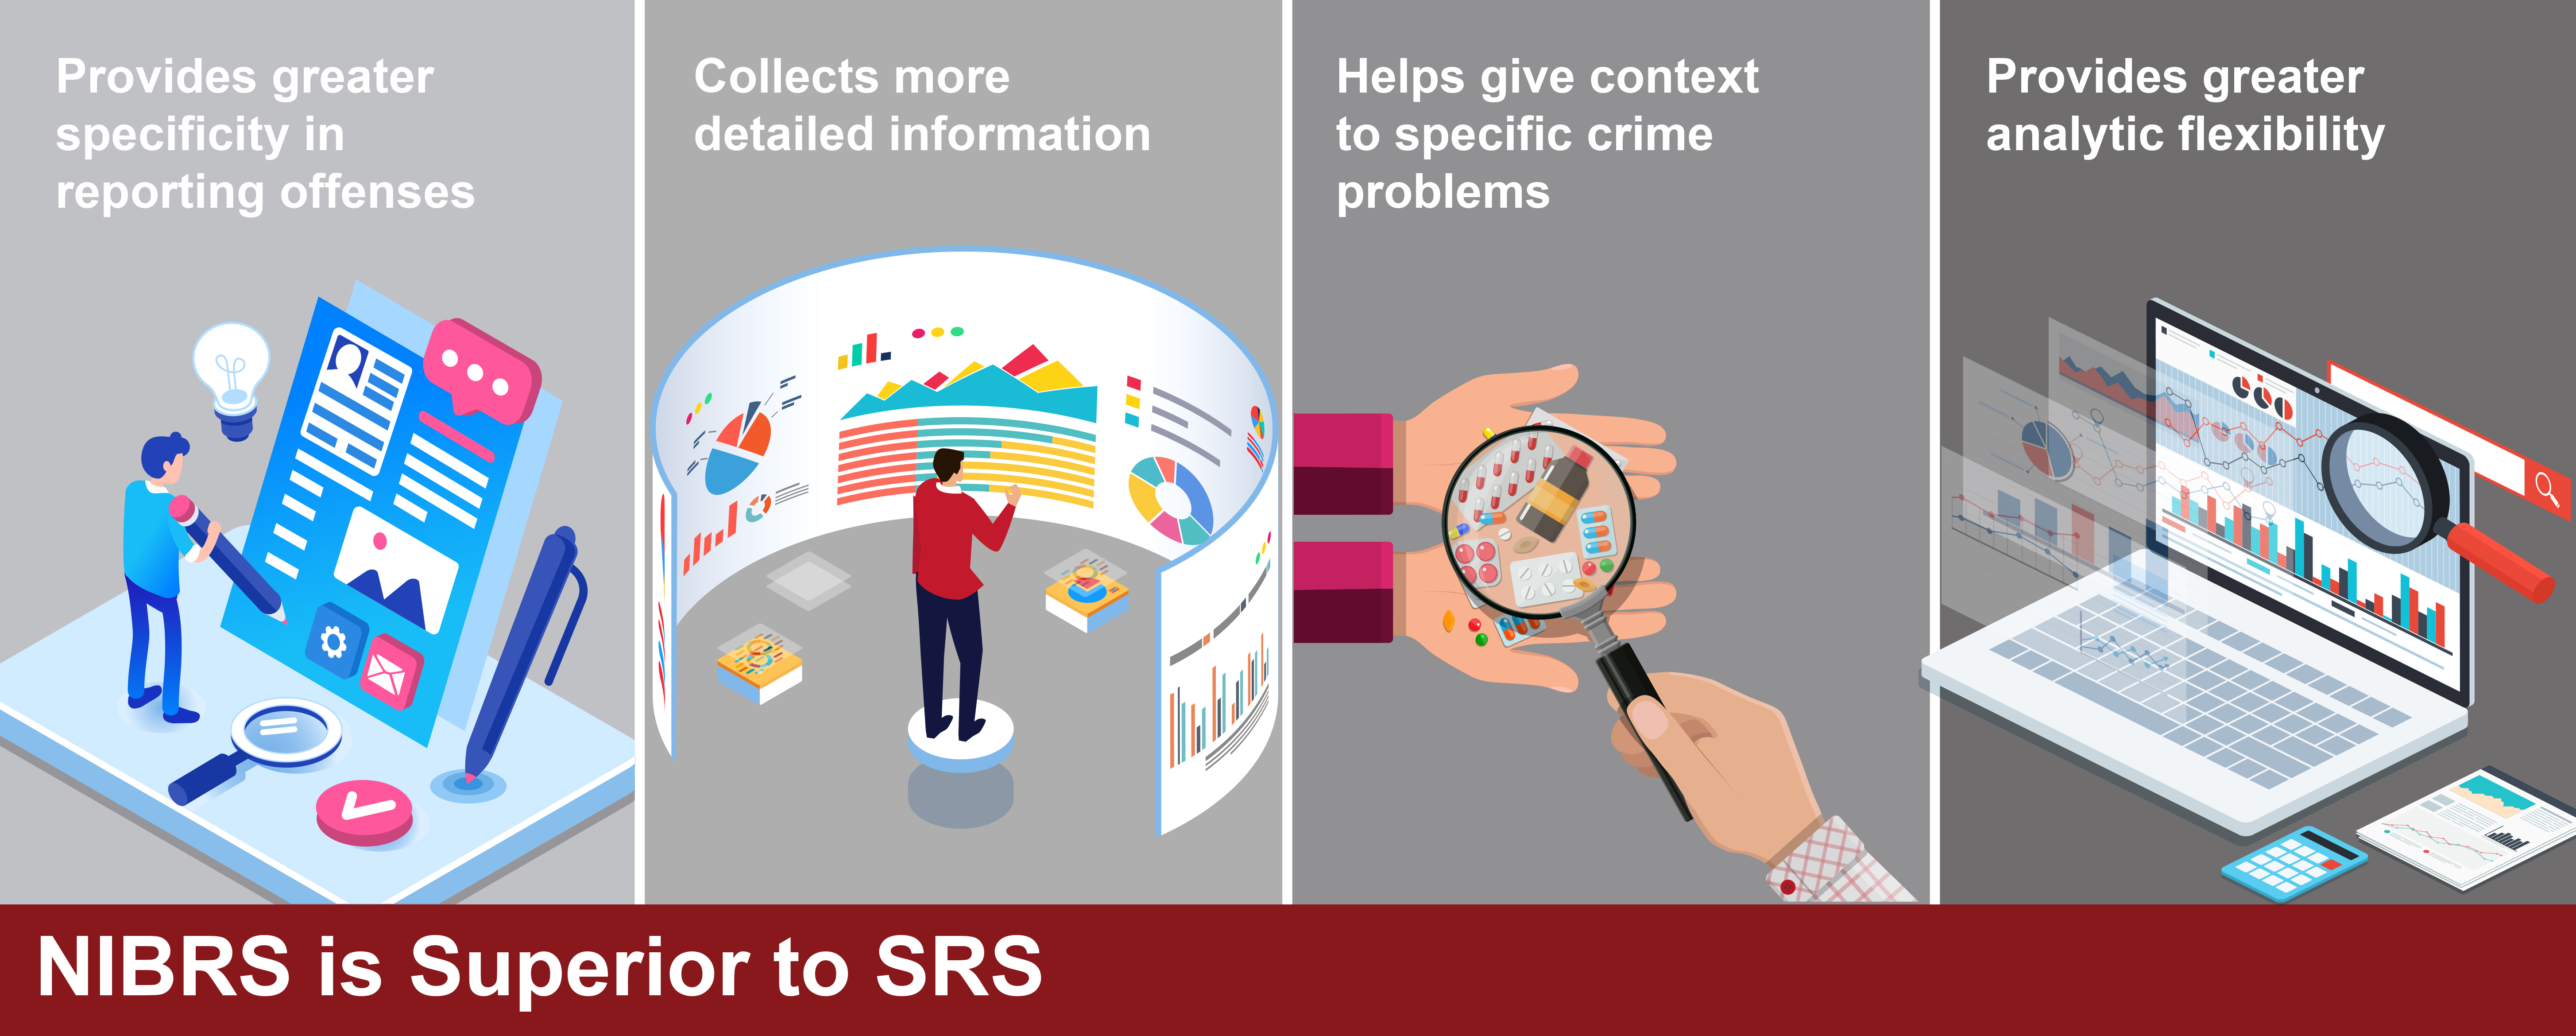 Infographic depicting why NIBRS is superior to SRS (provides greater specificity in reporting offenses, collects more detailed information, helps give context to specific crime problems, provides greater analytic flexibility).